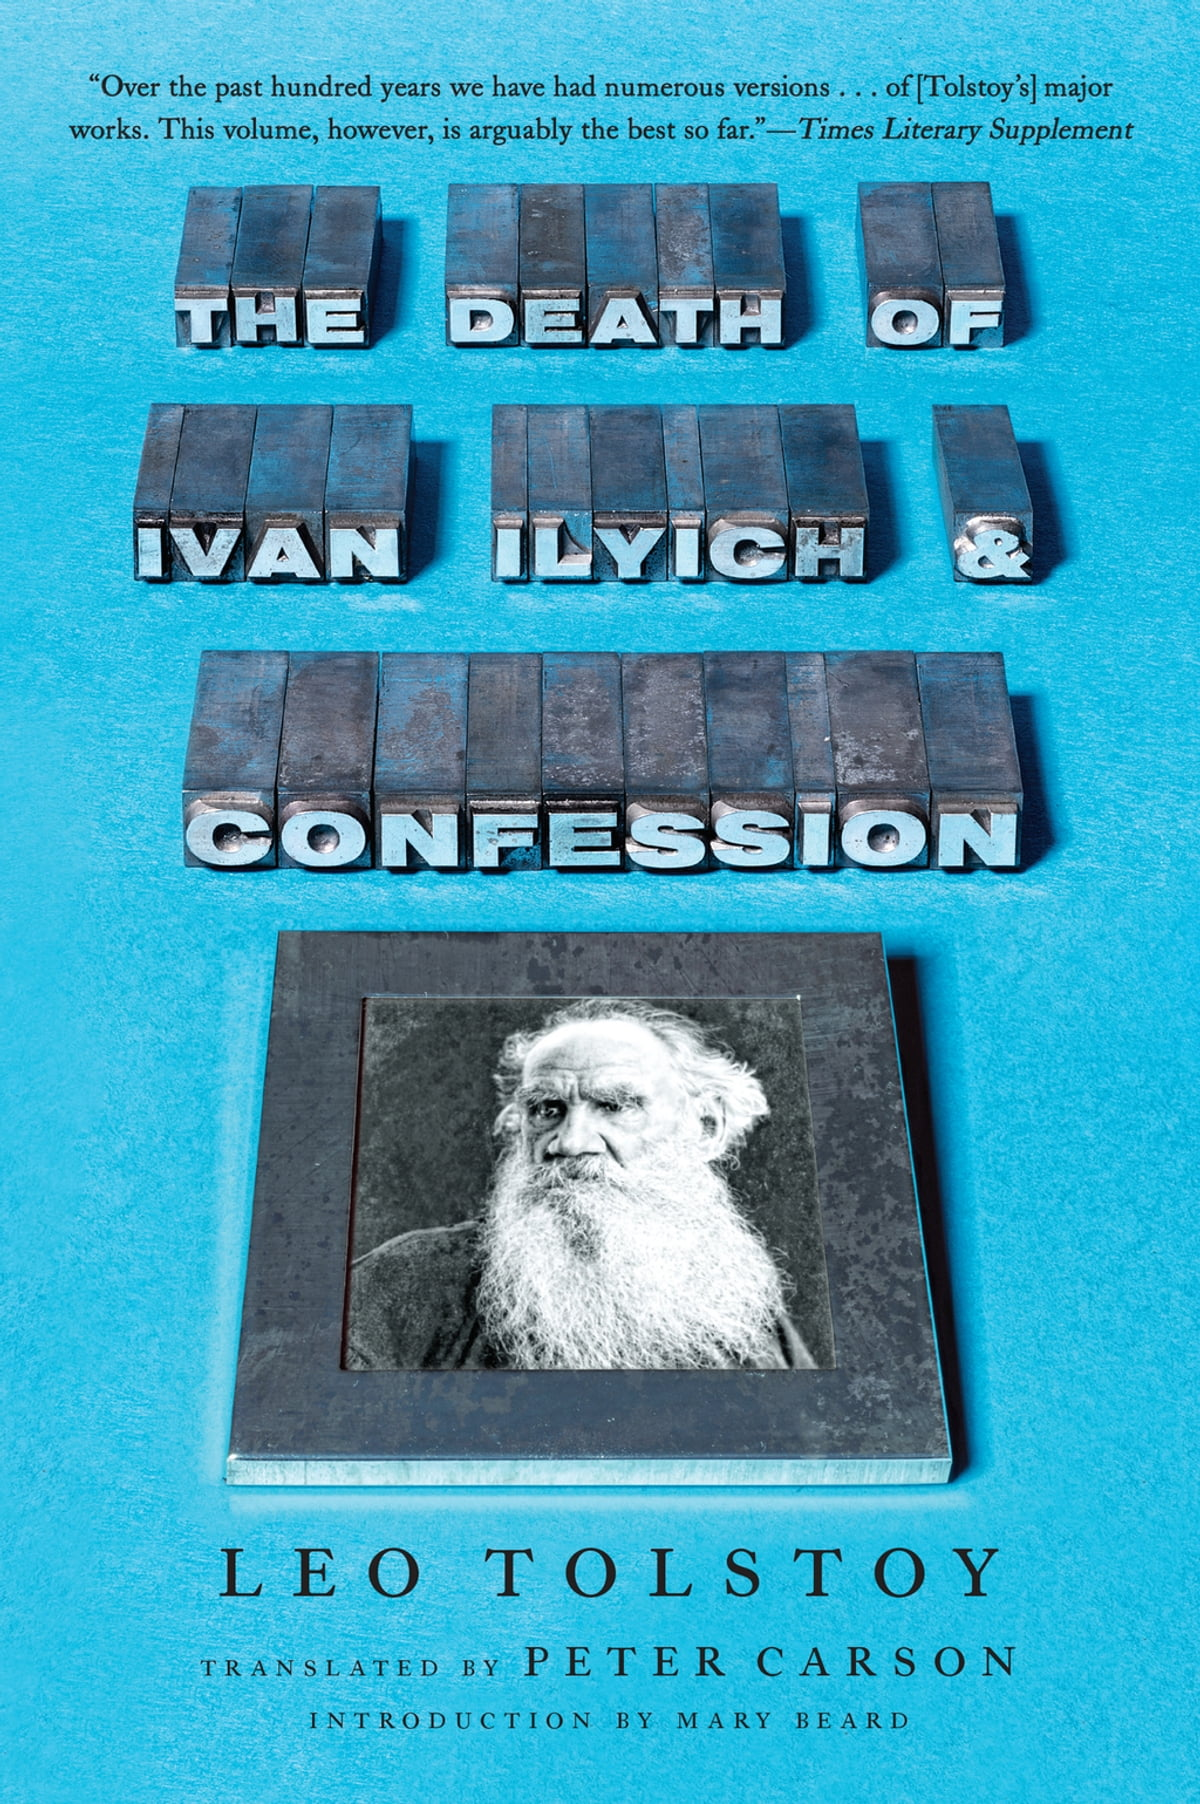 life and death of ivan illvich Ivan illich in the wellness movement, the concept of medicalization is attributed to ivan illich who was, also, one of the first to advocate patient empowerment  he was one of the movements greatest free thinkers who was born september 4, 1926 in vienna and died december 2, 2002 of cancer at the age of 76 in bremen, germany.